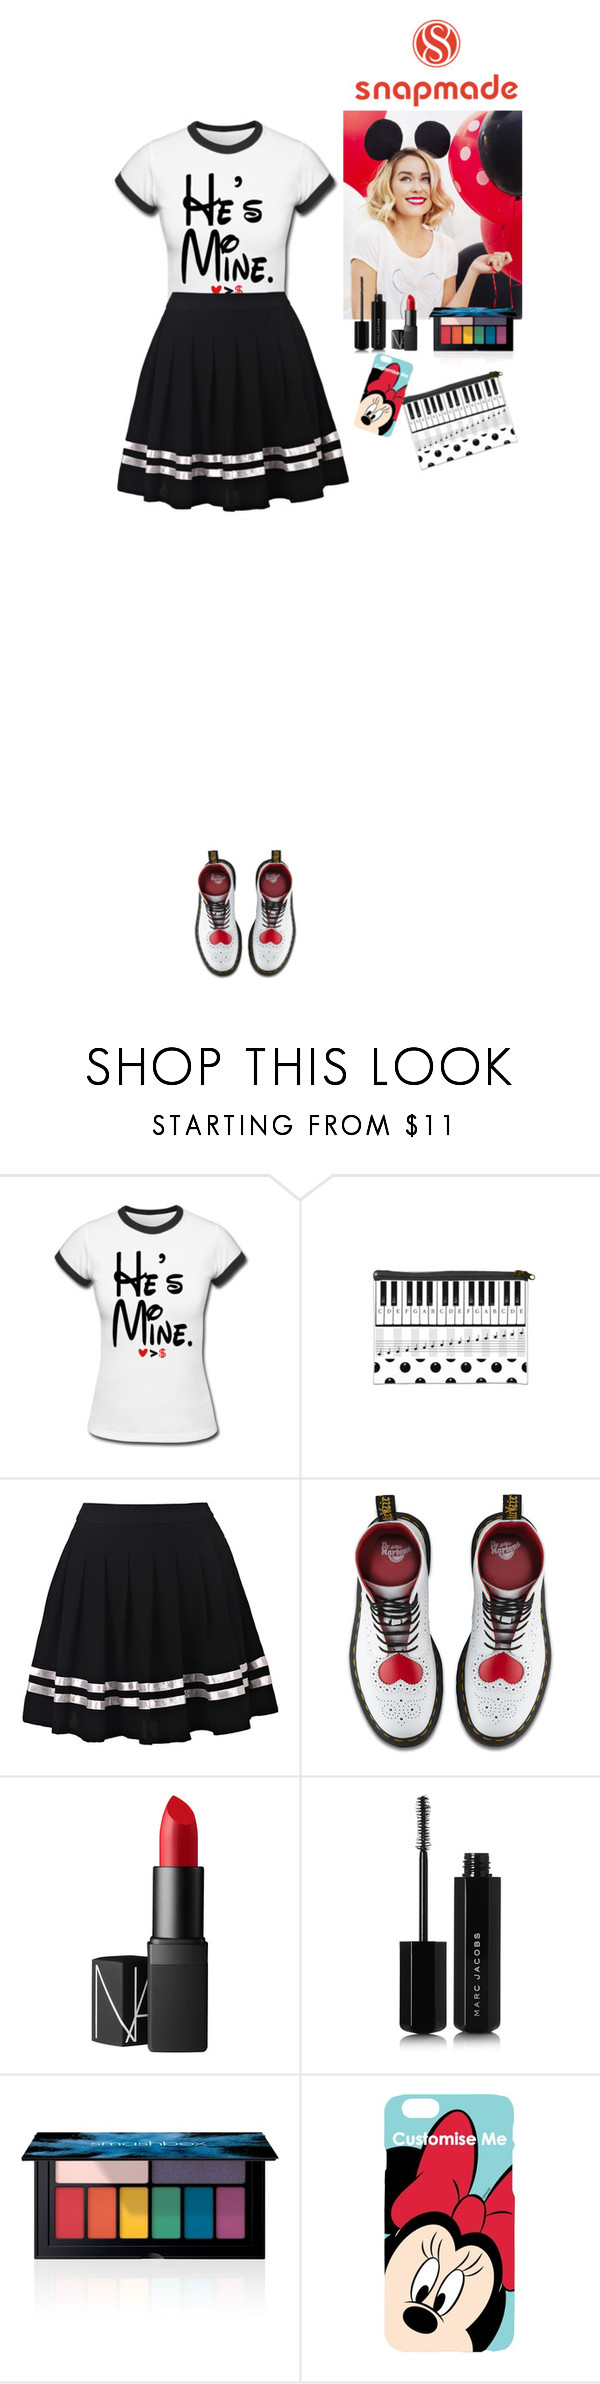 """Visit Disneyland Snapmade"" by eliza-redkina ❤ liked on Polyvore featuring Dr. Martens, Lauren Conrad, NARS Cosmetics, Marc Jacobs, Smashbox and Disney"